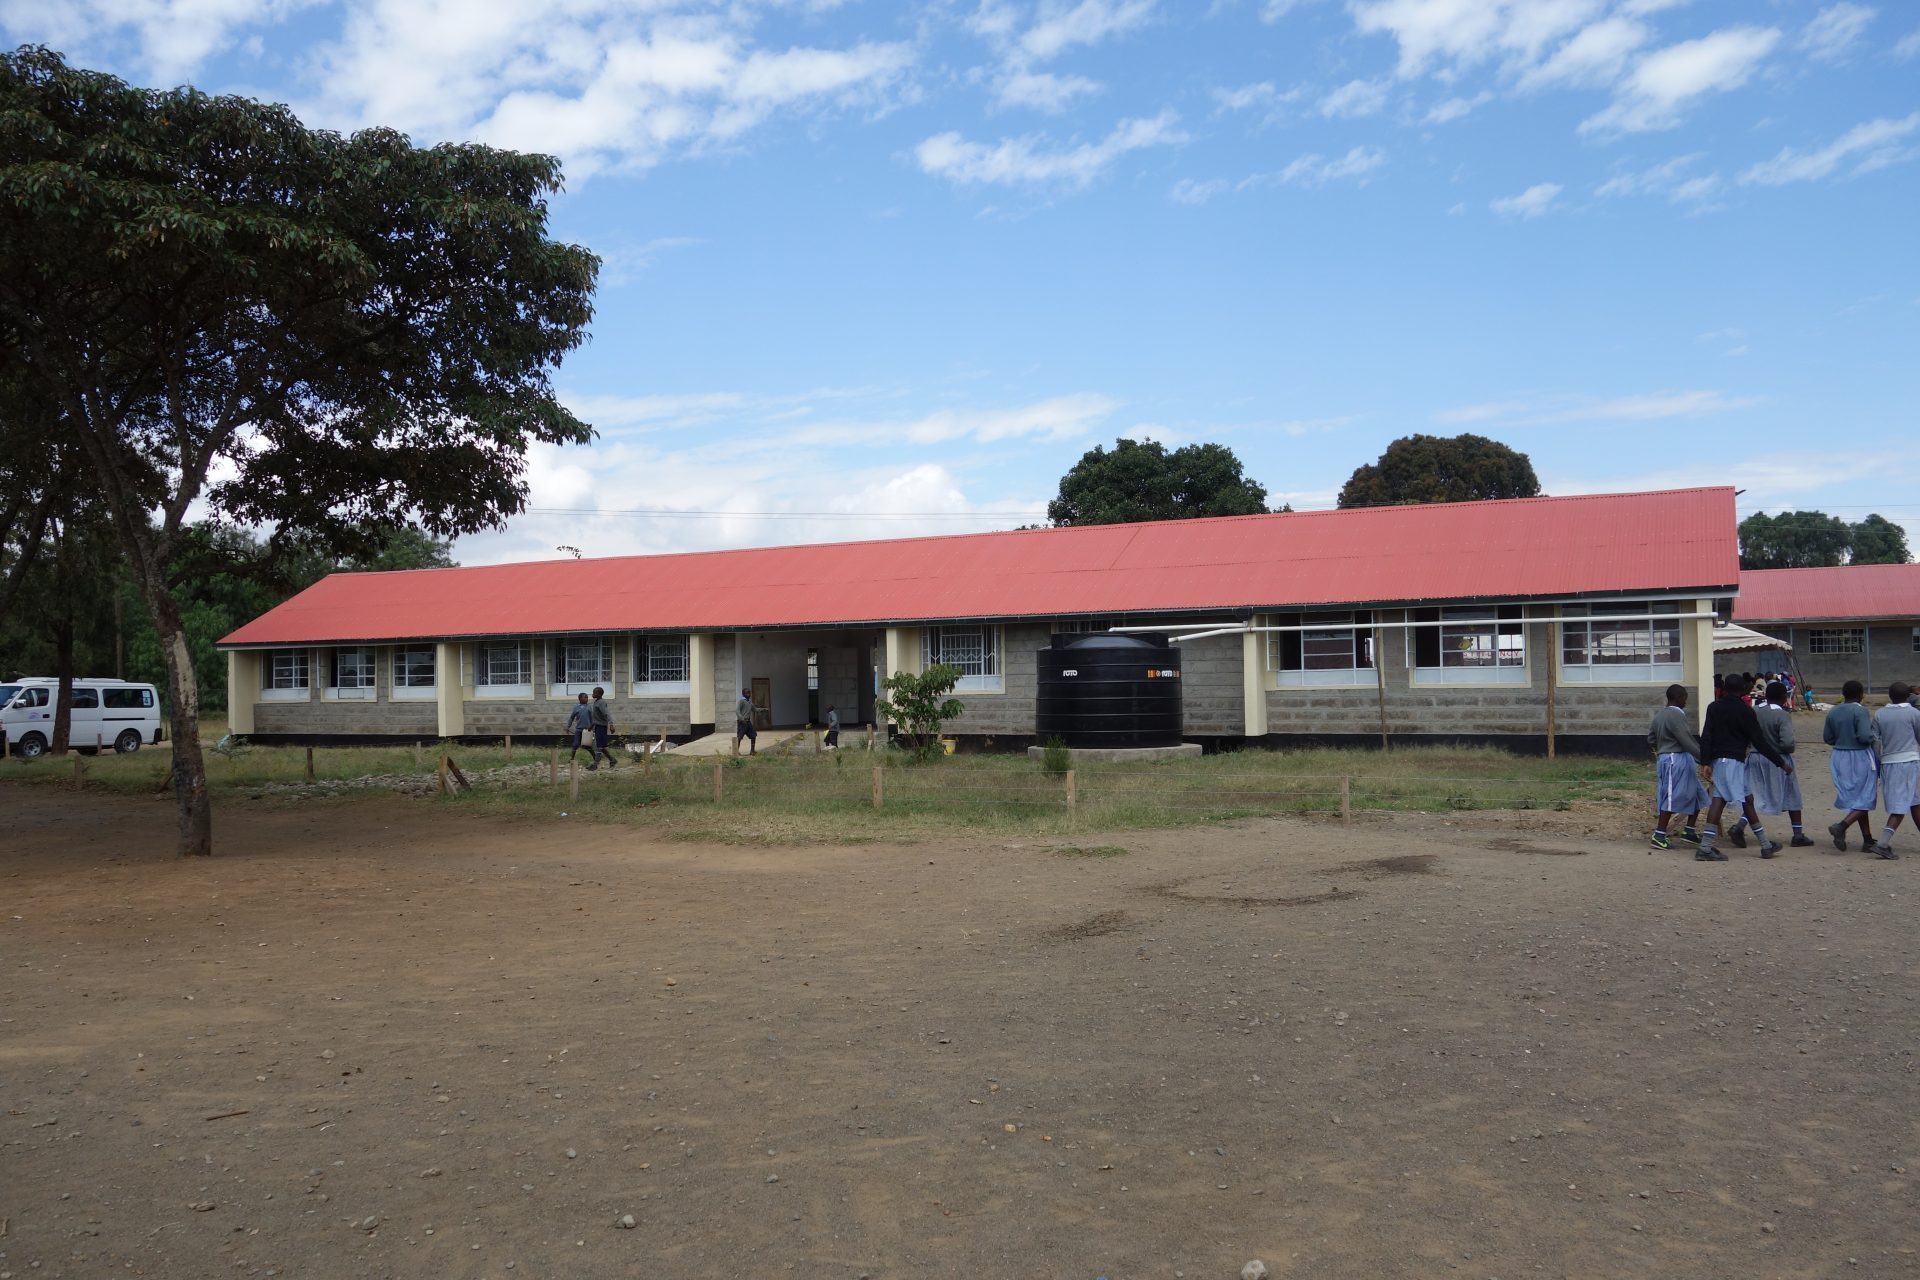 GILGIL PRIMARY SCHOOL – 2 NEW CLASSROOMS, ADMINISTRATION BUILDING, AND WATER HARVESTING SYSTEM